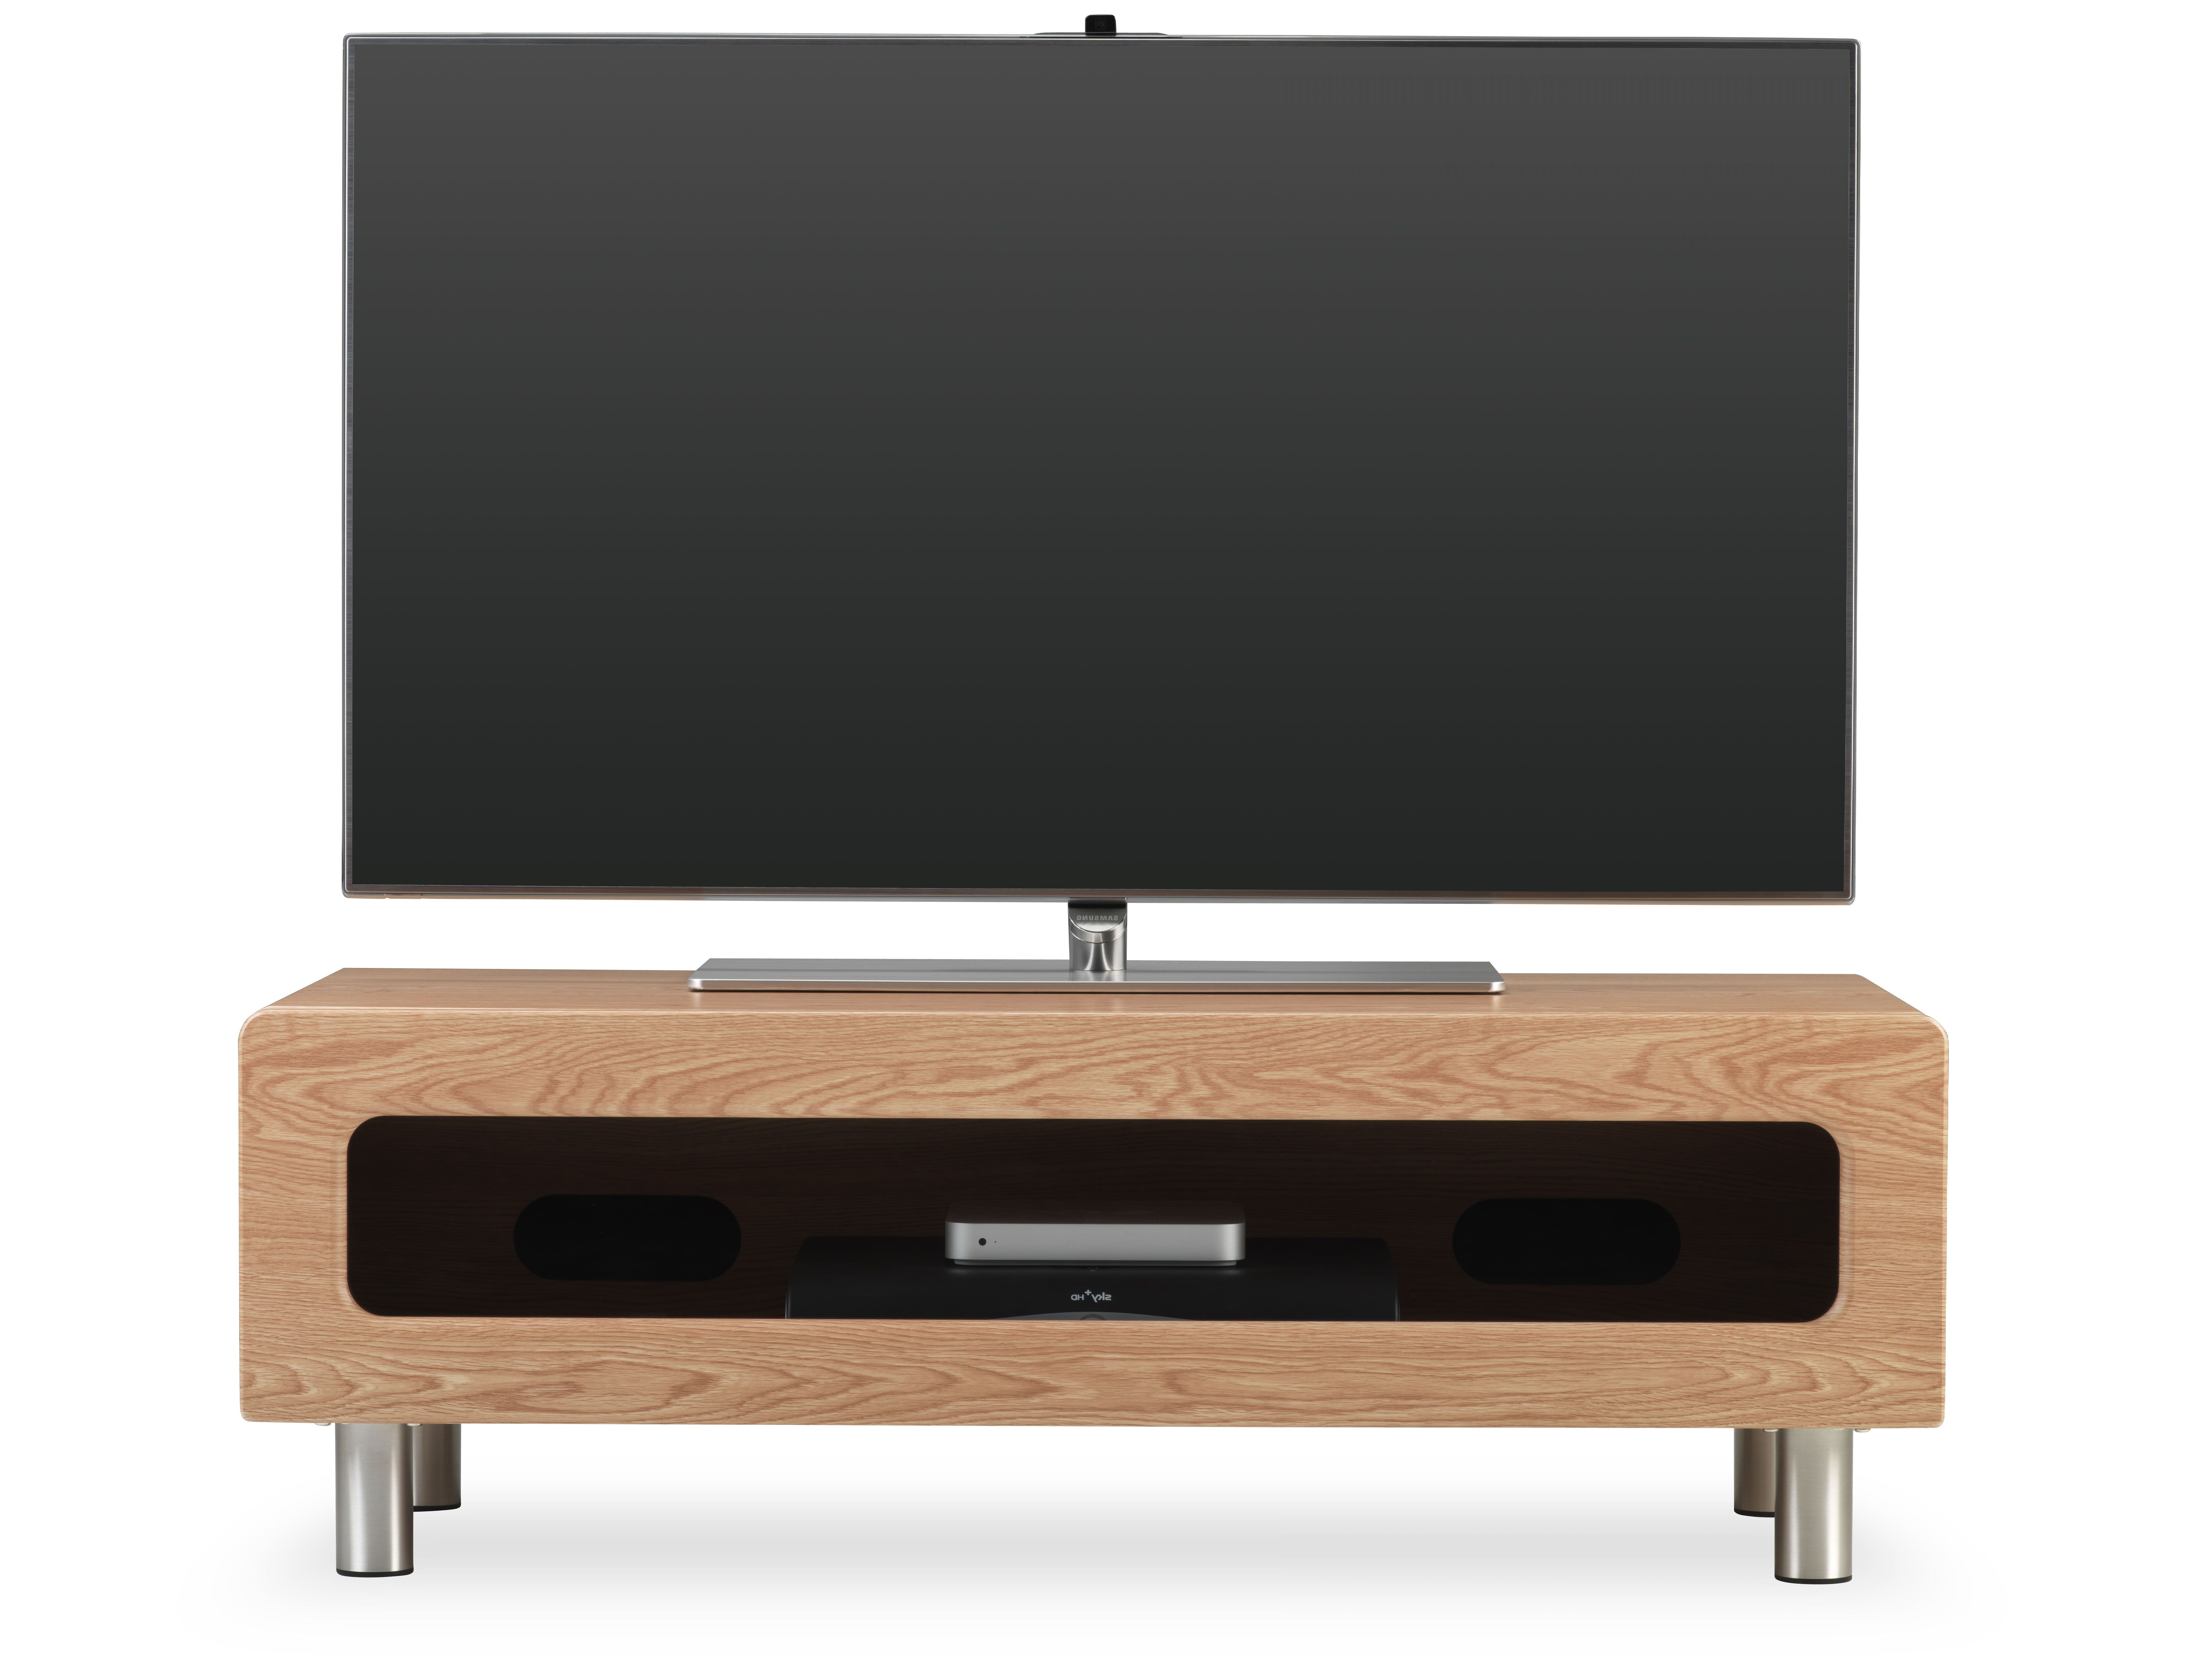 Enclosed Tv Cabinets For Flat Screens With Doors Regarding Fashionable New Ambri Alphason's New Ambri Range Of Tv Stands Offers A Modern (Gallery 19 of 20)